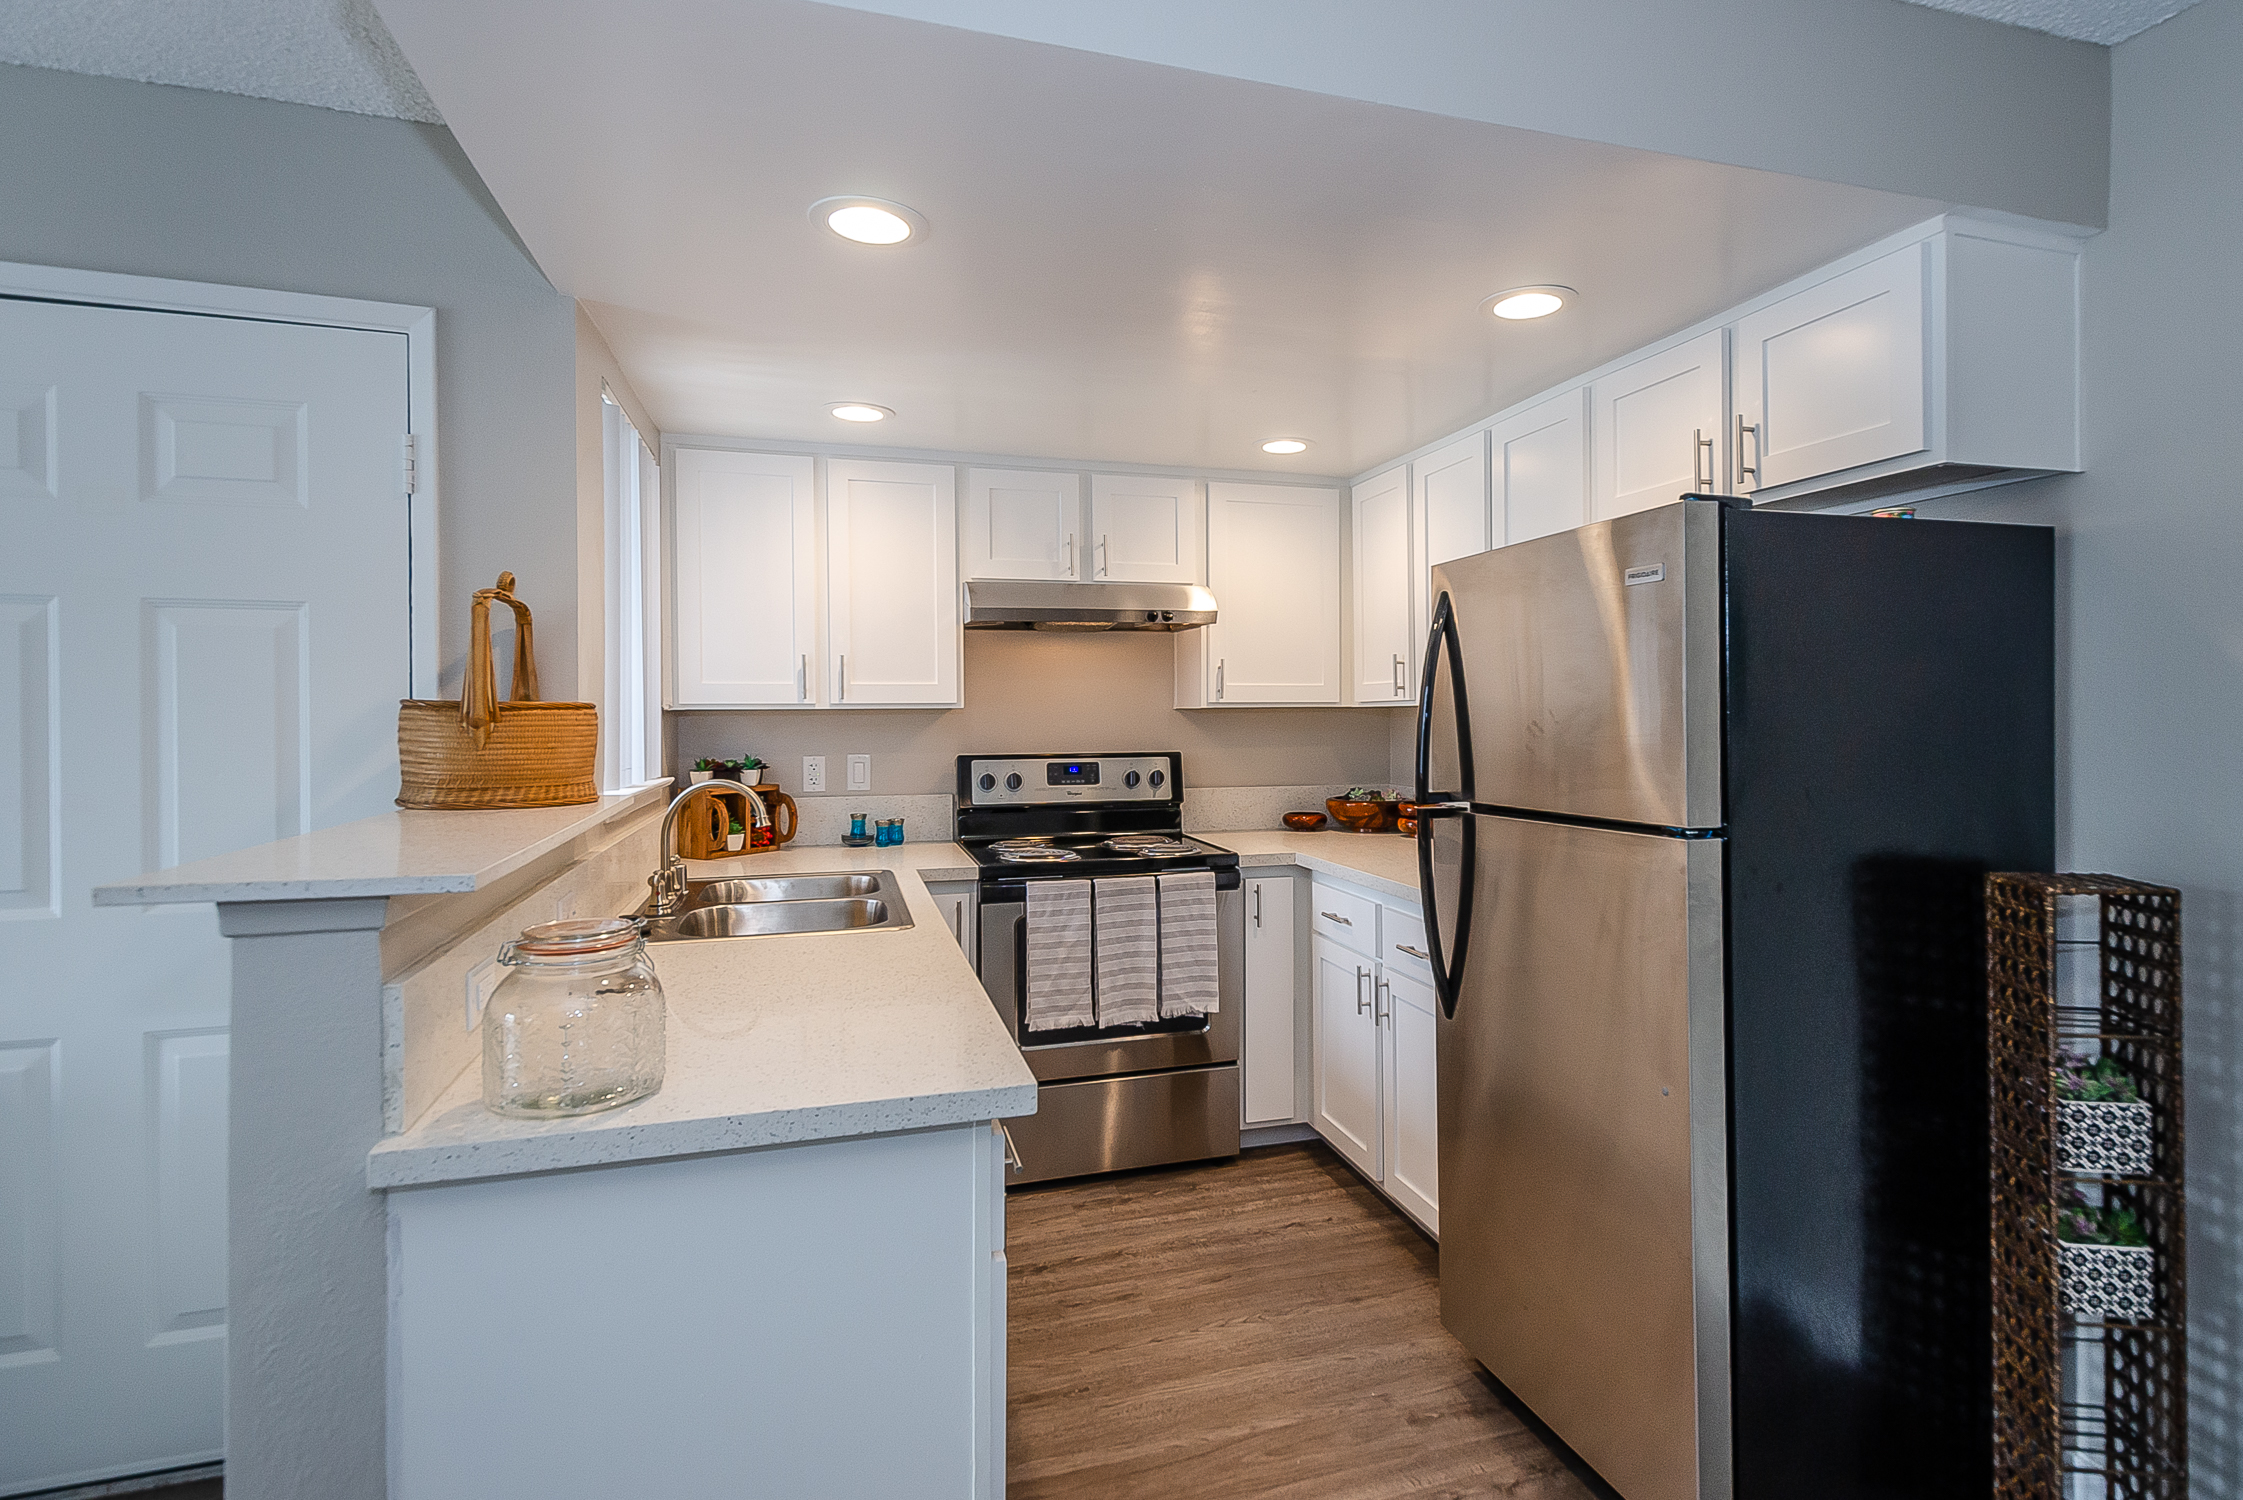 kitchen with recessed lights, dishwasher, tall bar counter, stainless appliances and wood-look floor